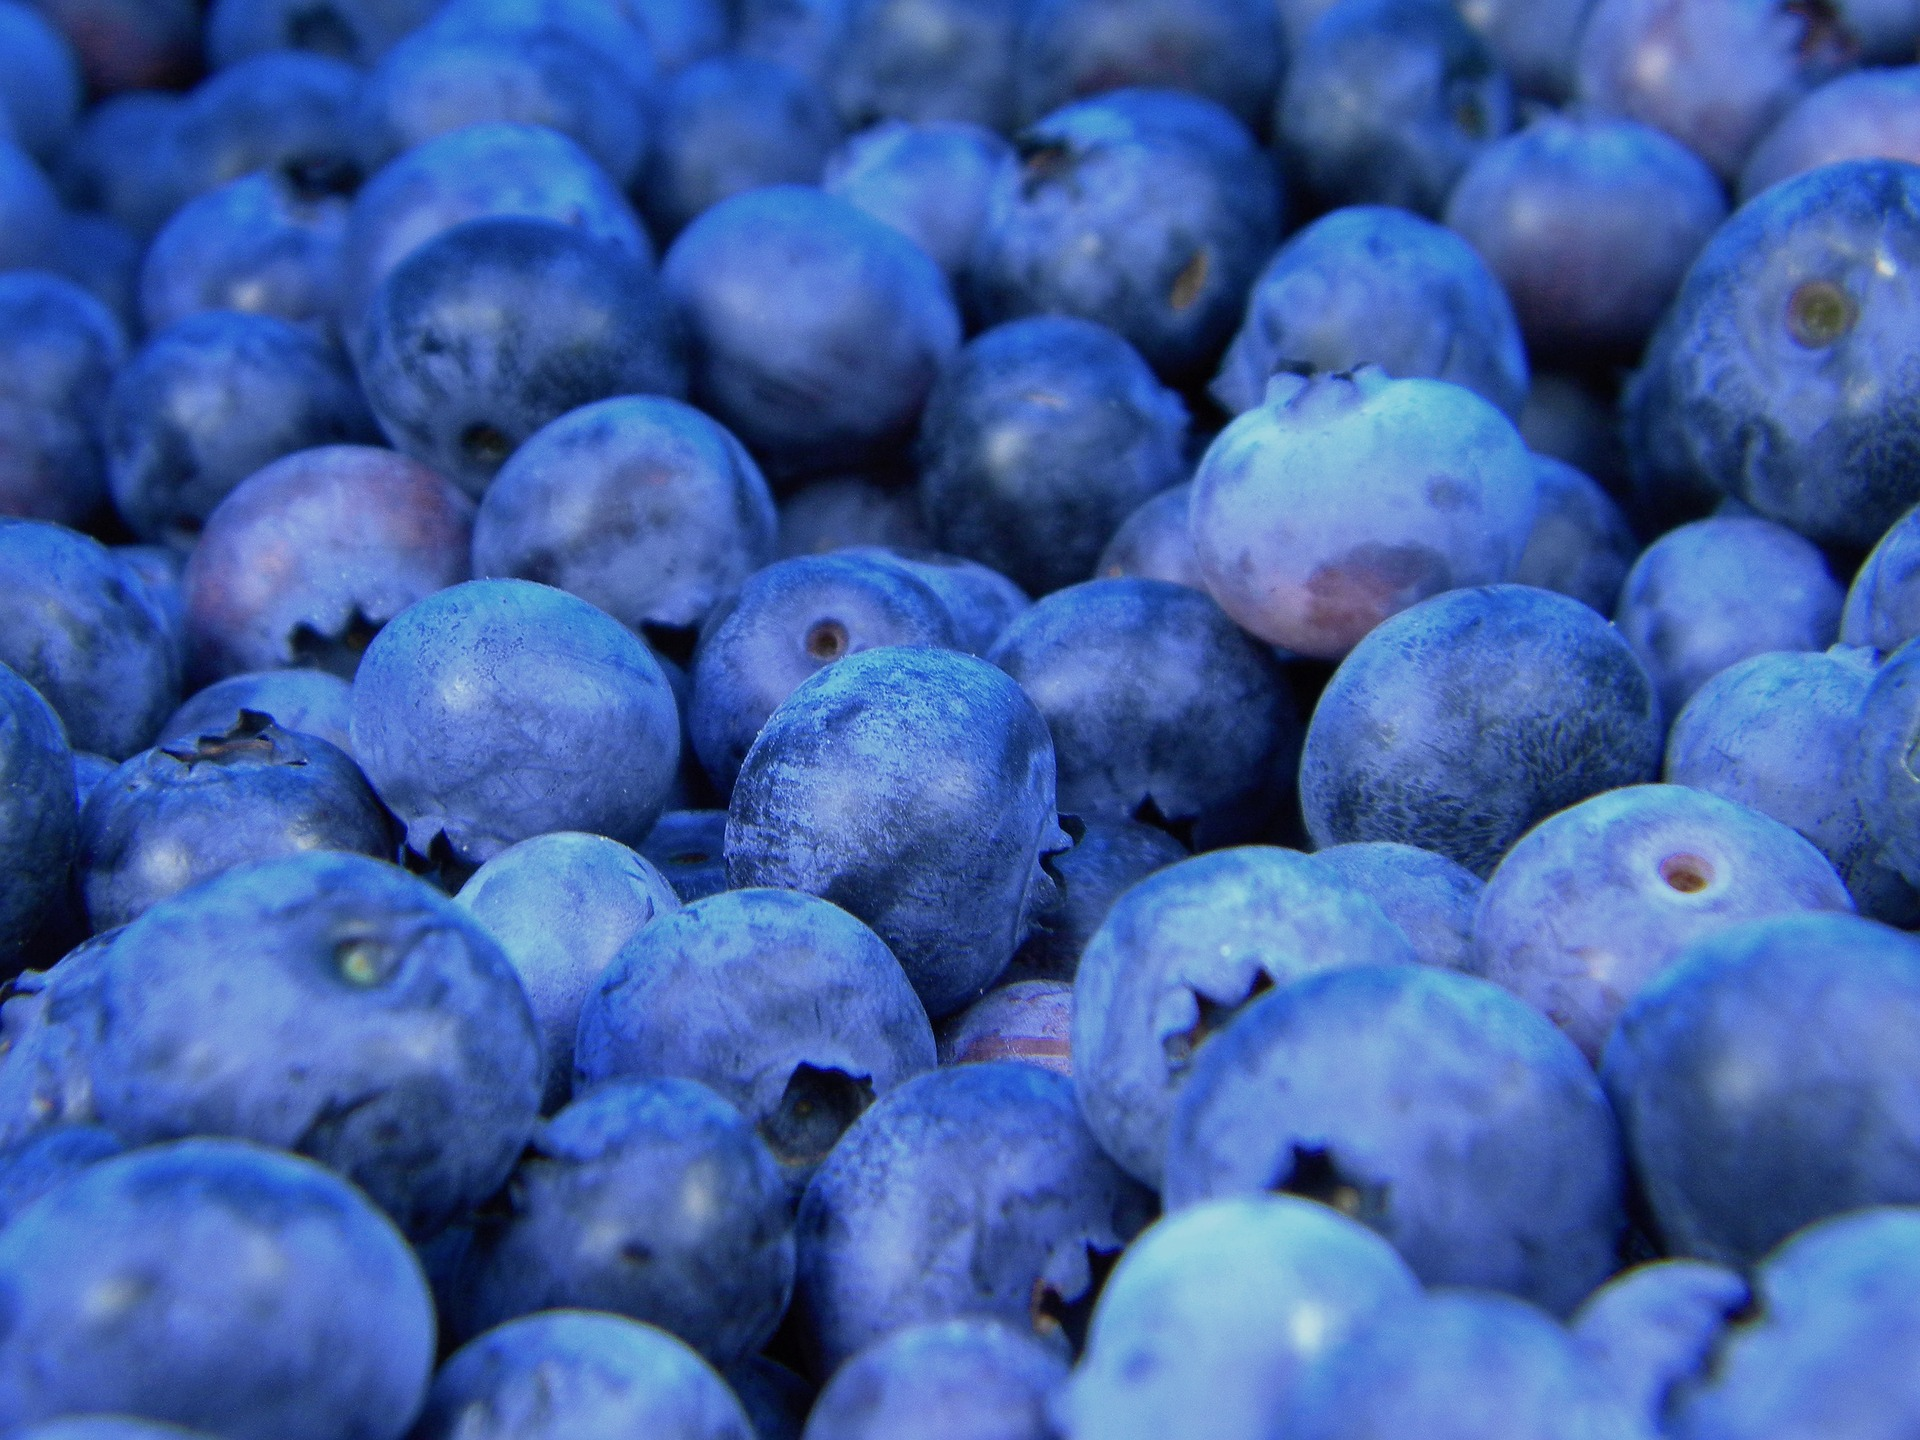 When picking your blueberry, pick the right type for your zone, but also pick one that makes your taste buds happy. Prefer sweet? Go with 'Blueray'. Like slighty tart? Try 'Chippewa.'